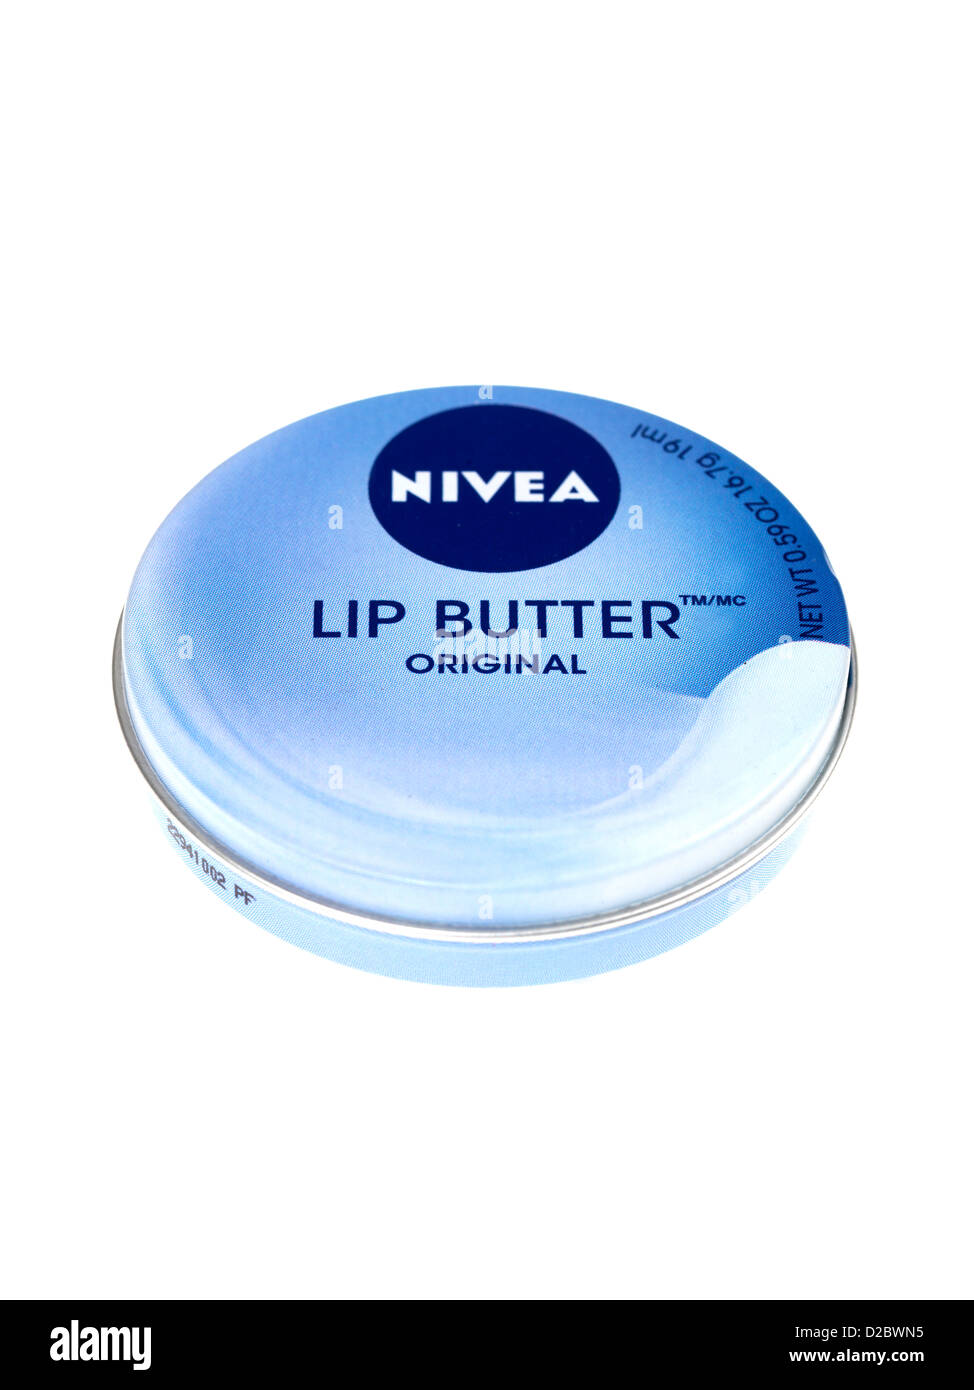 Nivea Lip Butter - Stock Image